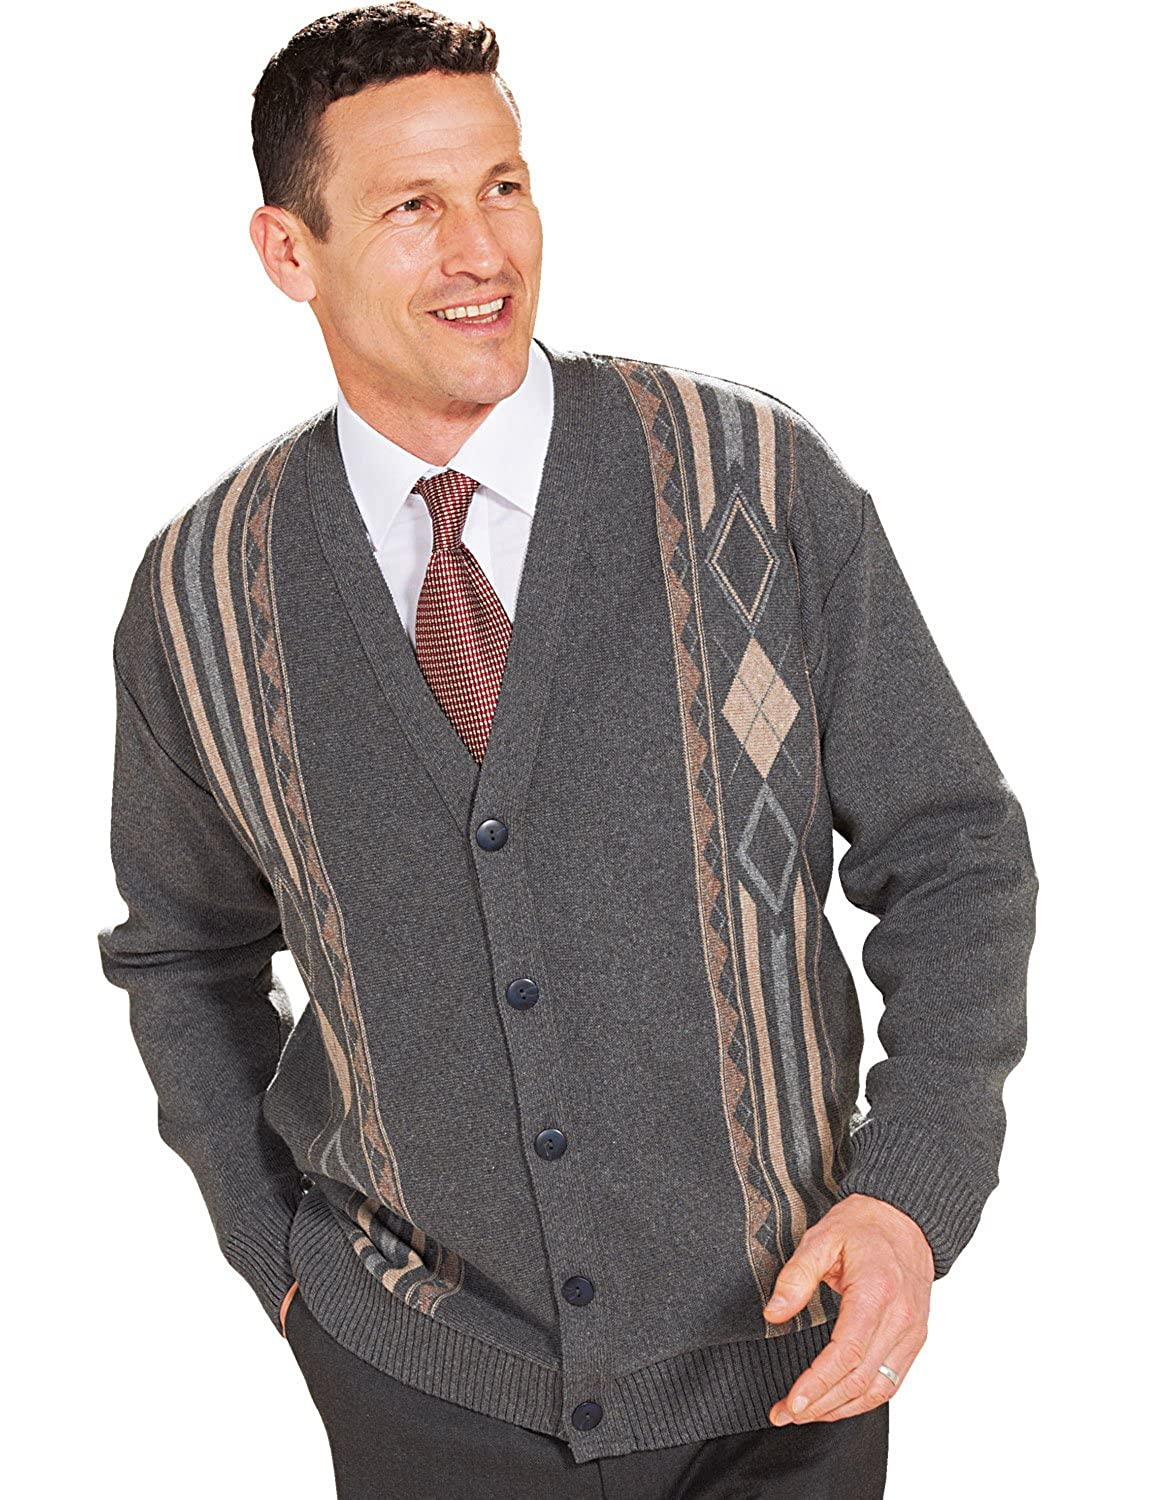 1950s Men's Clothing Benbrook Mens Jaquard Button Cardigan $61.10 AT vintagedancer.com